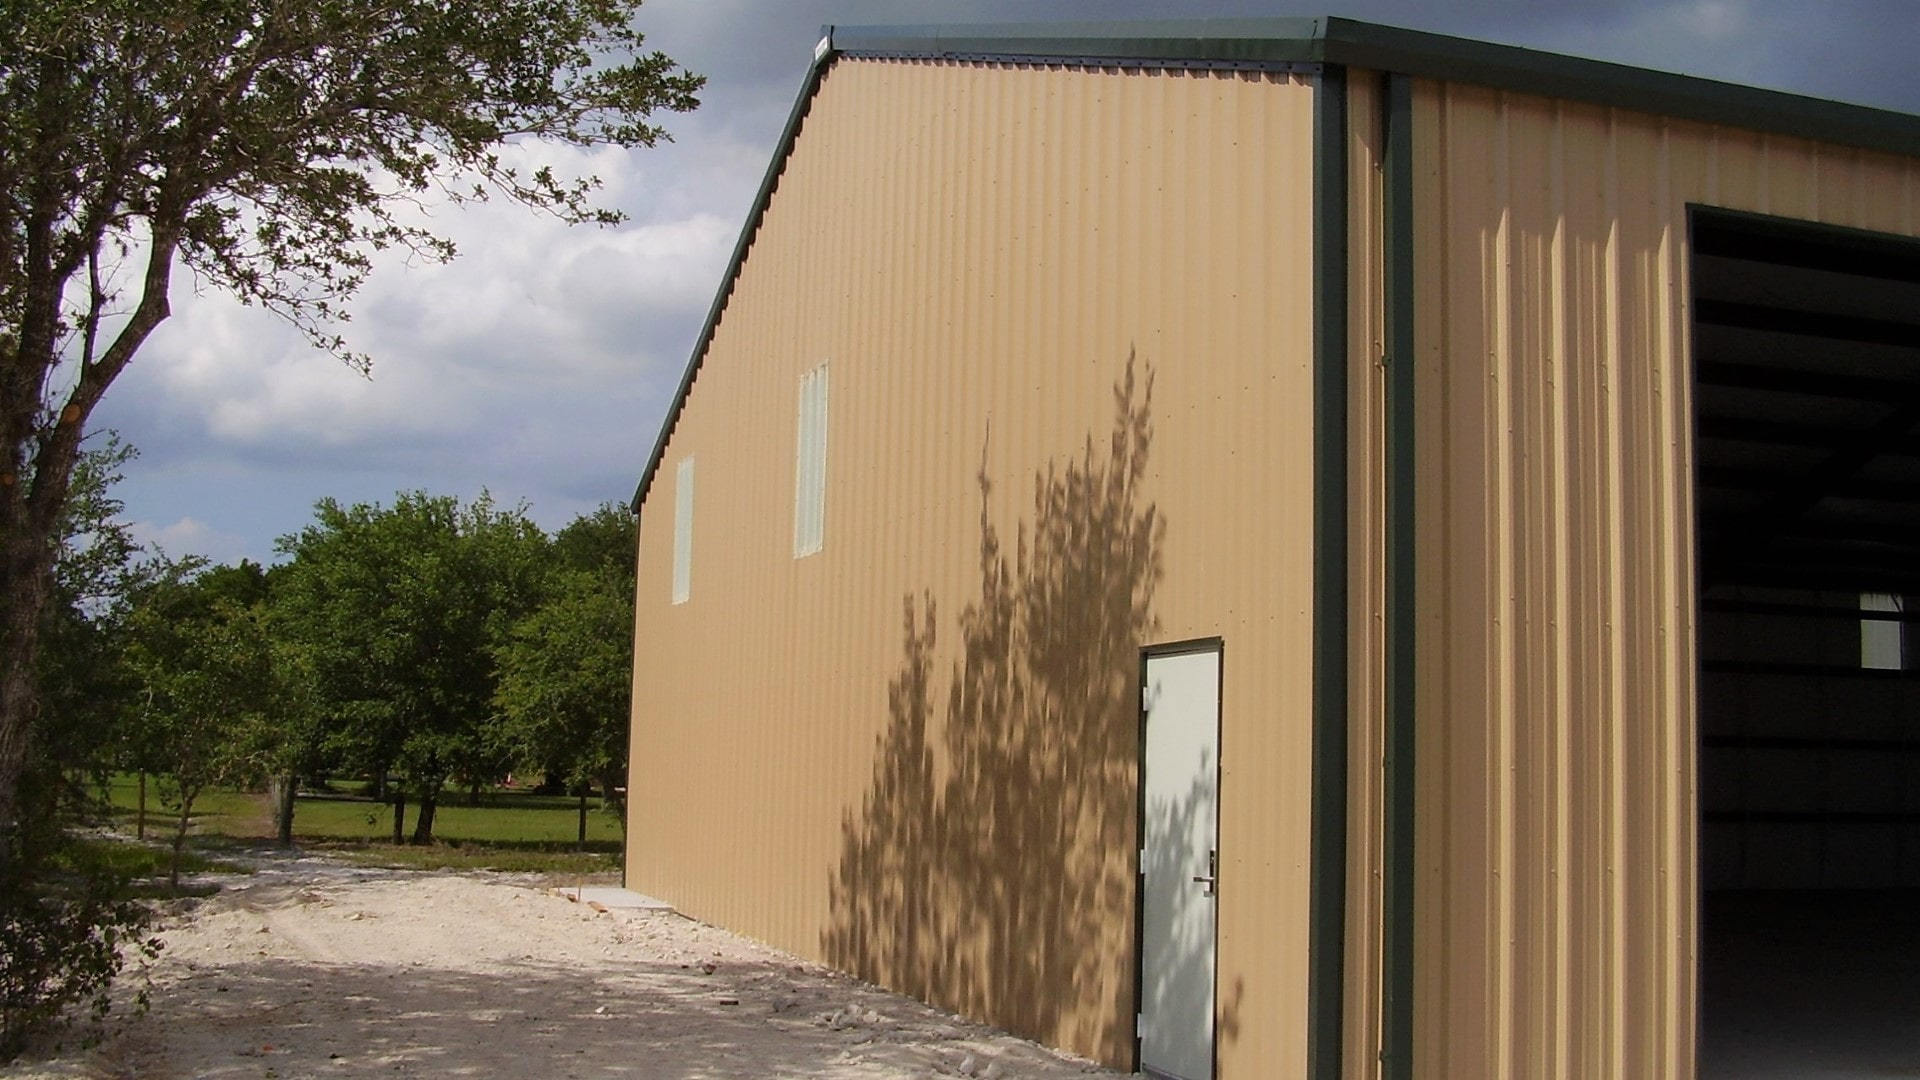 Tan steel building with dark roof and trim, 3 large rollup doors and wall LTPs. View of left endwall.